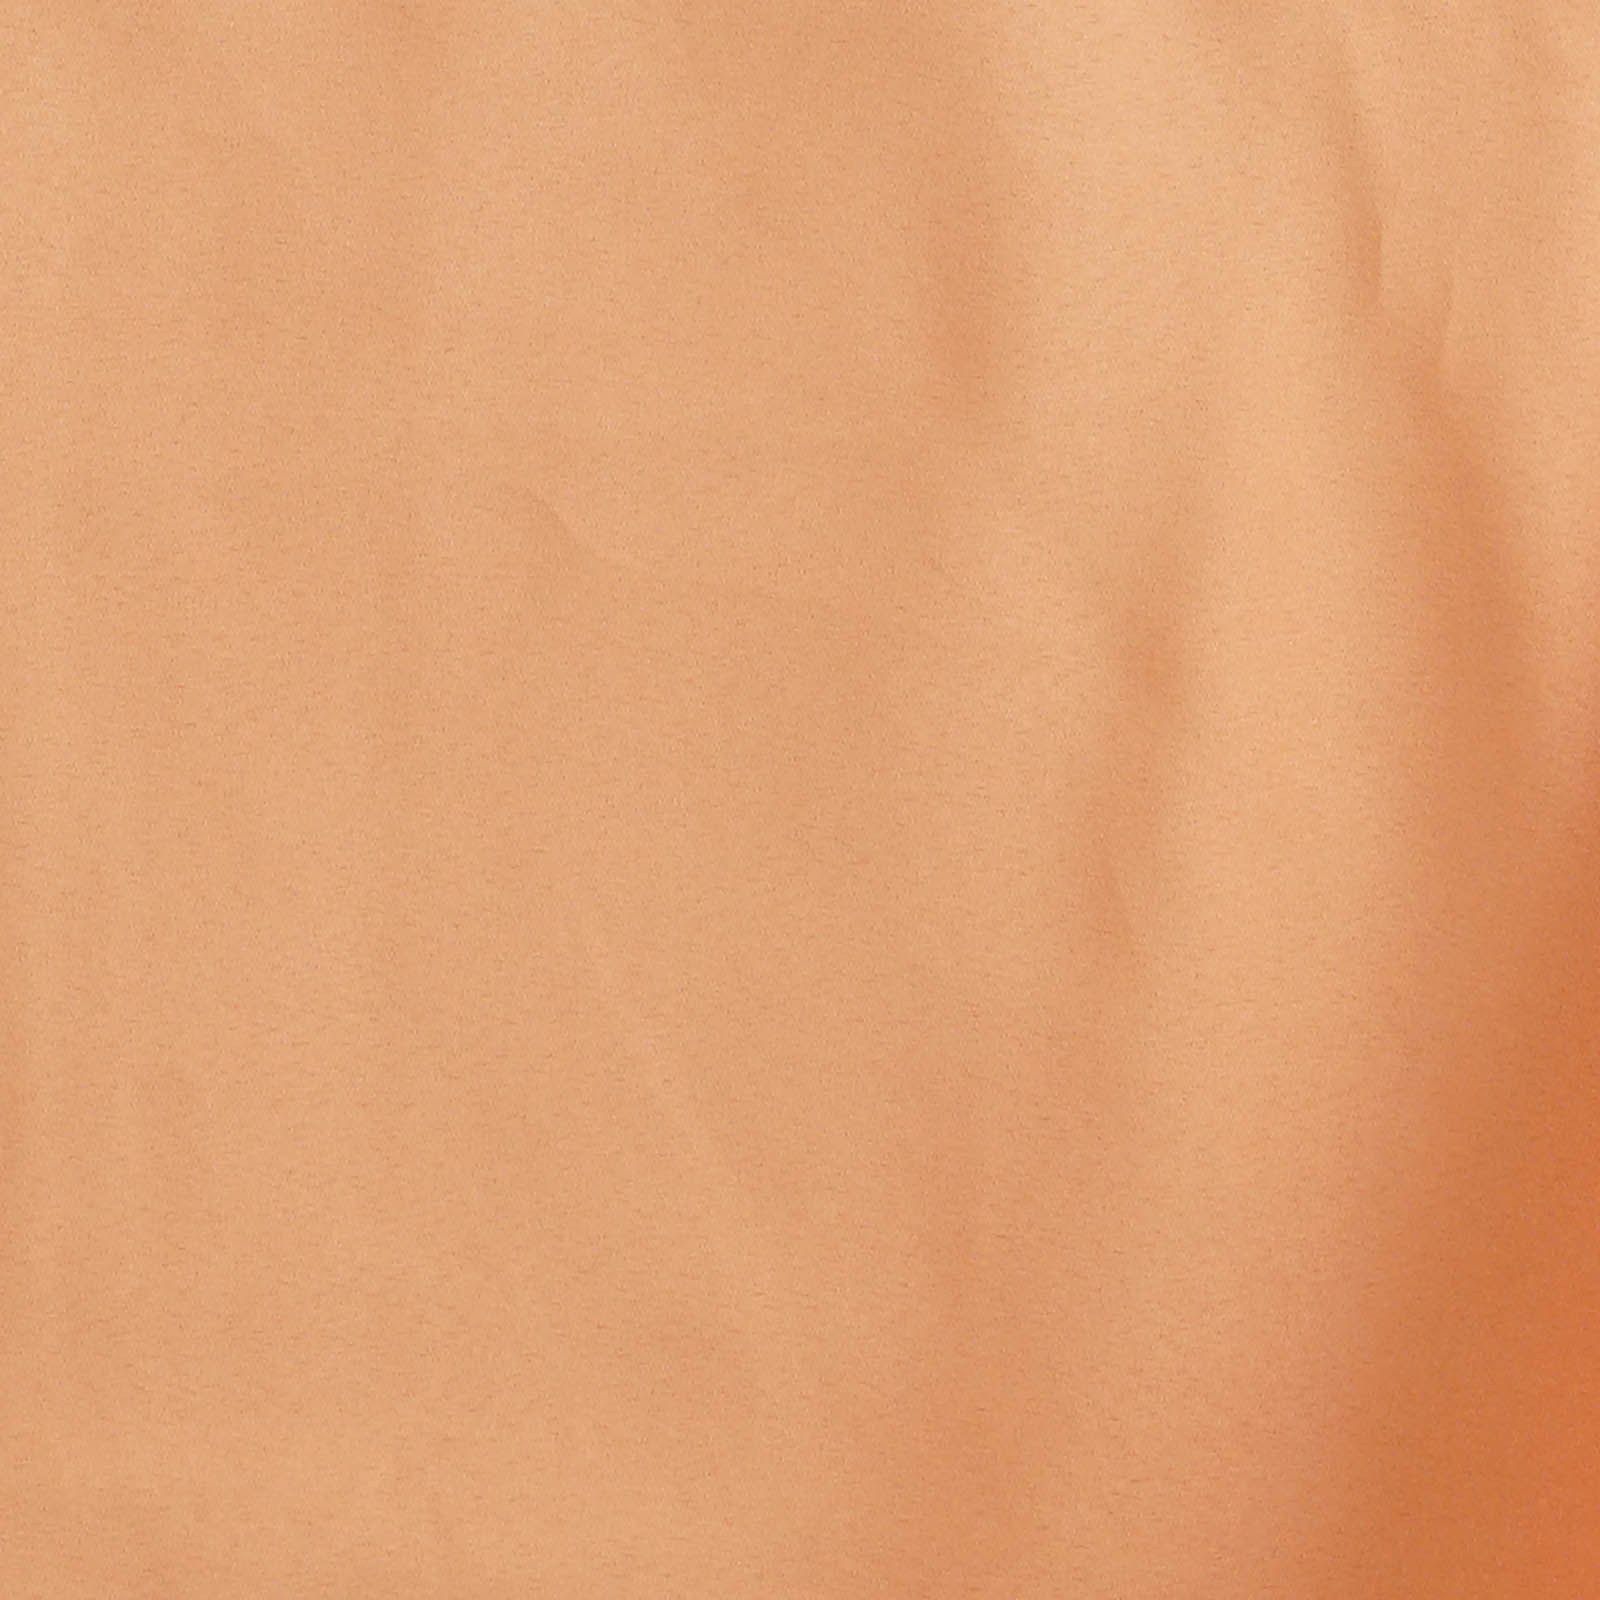 90x156-034-Polyester-Rectangle-Tablecloths-For-Wedding-Party-Banquet-Events thumbnail 32